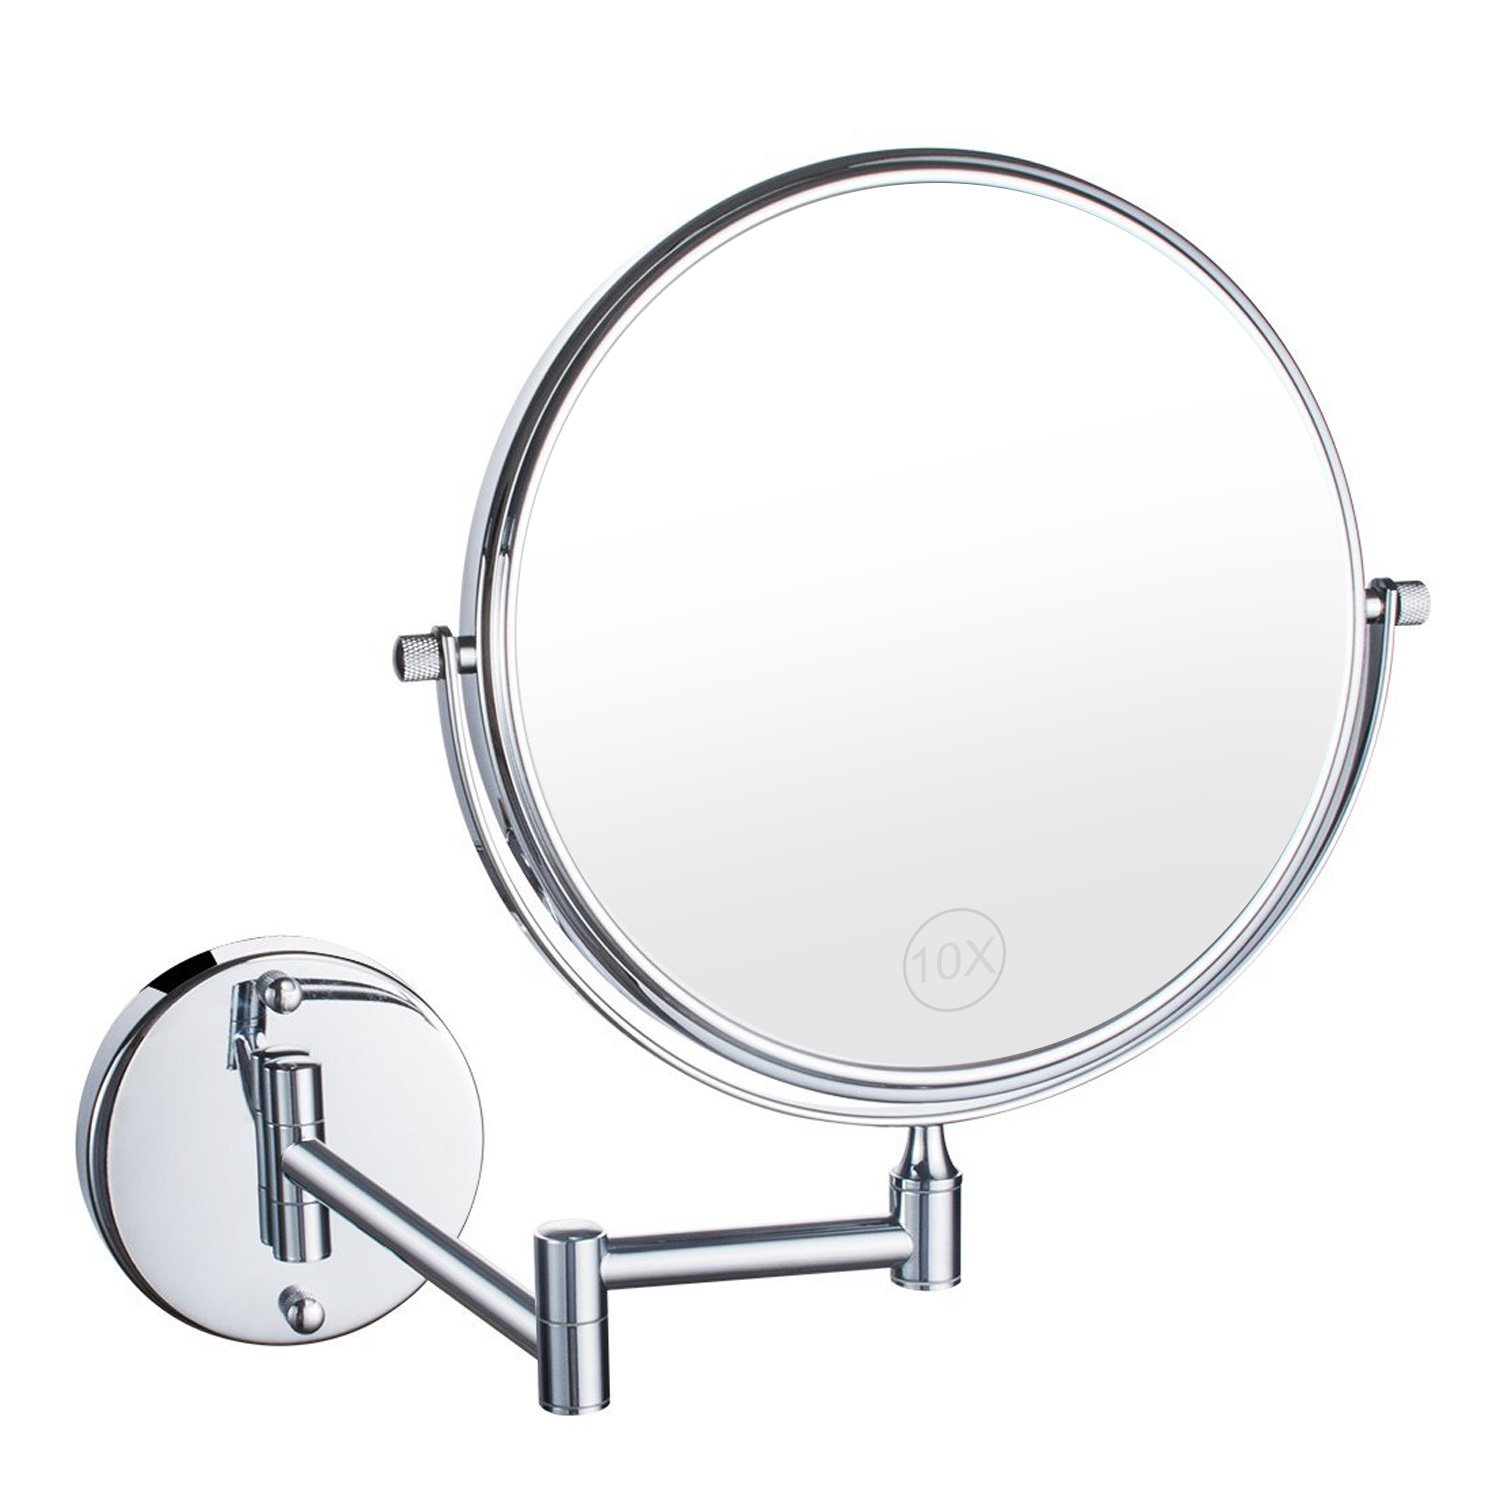 UniqueBella 10X Bathroom Vanity Magnifying Mirror, Makeup Round Wall ...